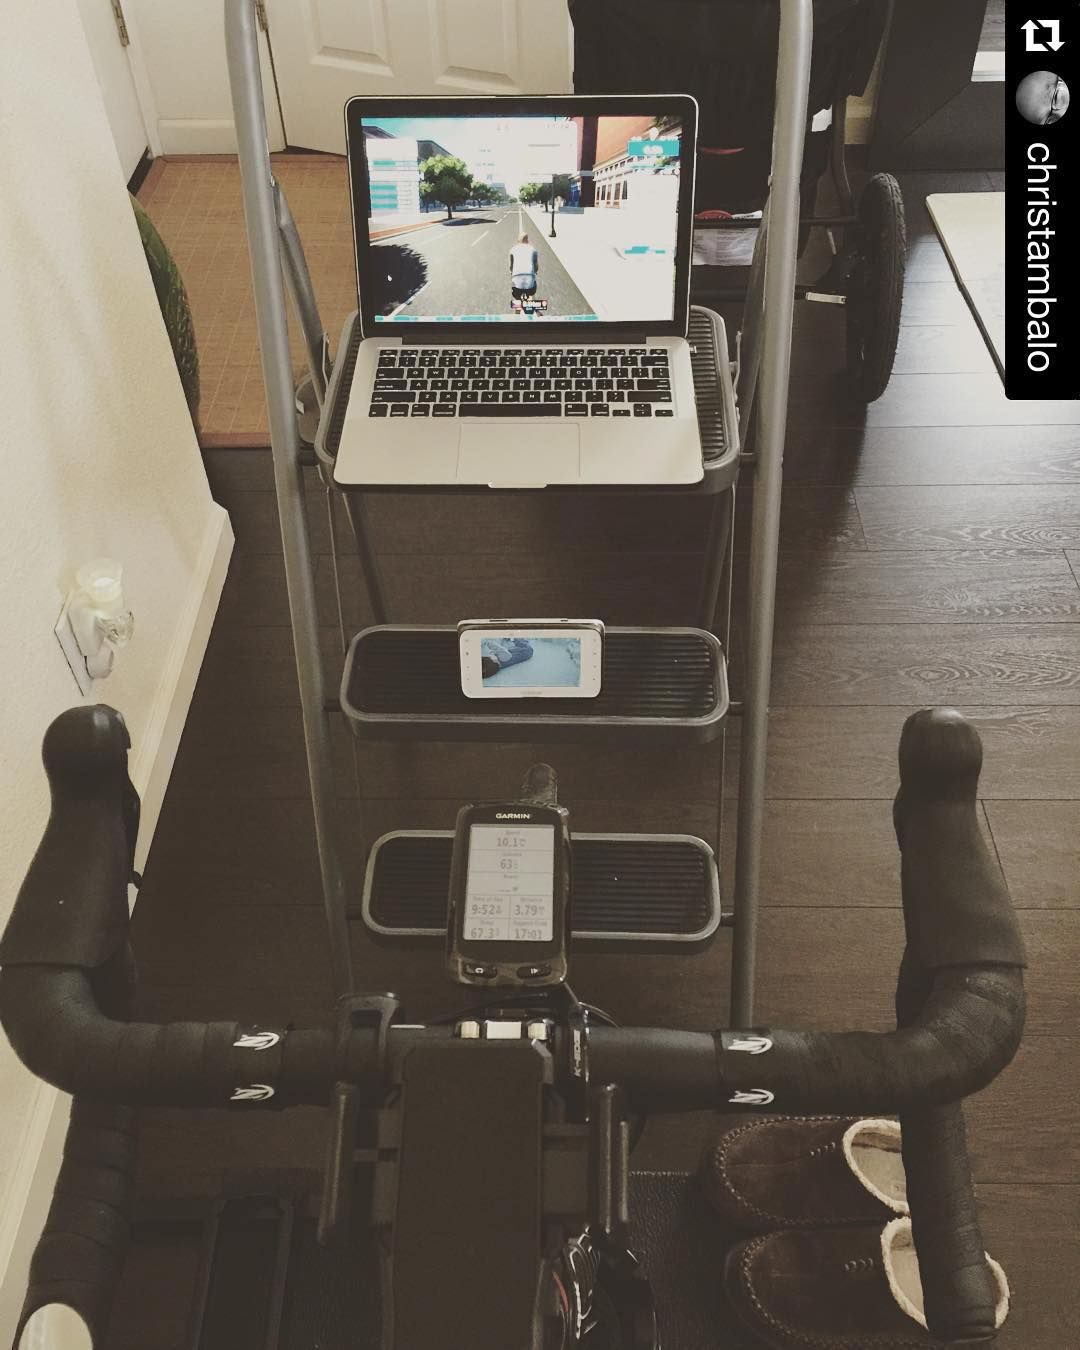 Ingenious Zwift set-up! #Repost @christambalo with